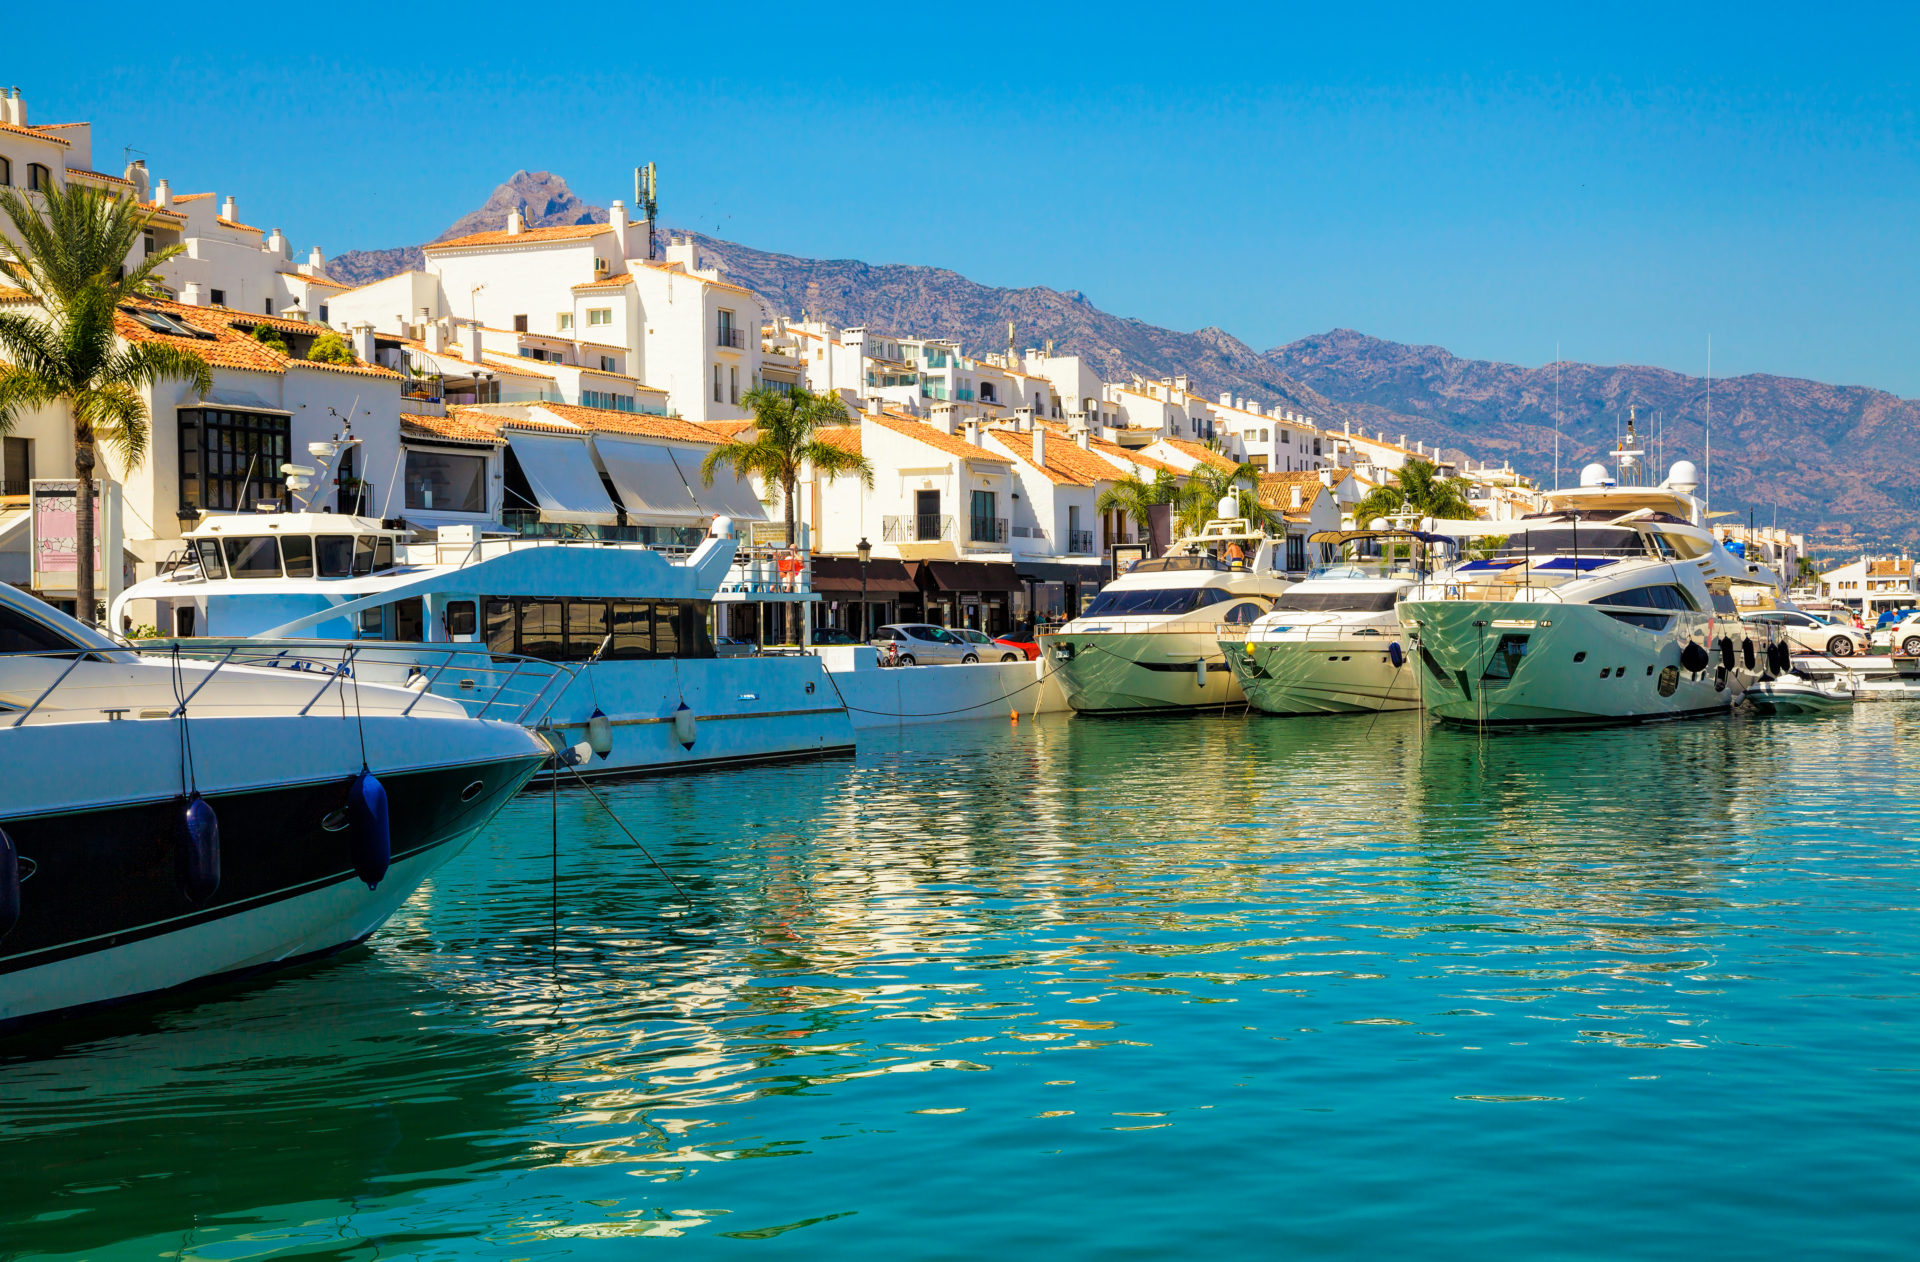 Luxury yachts in Puerto Banus Marina, Marbella, Spain